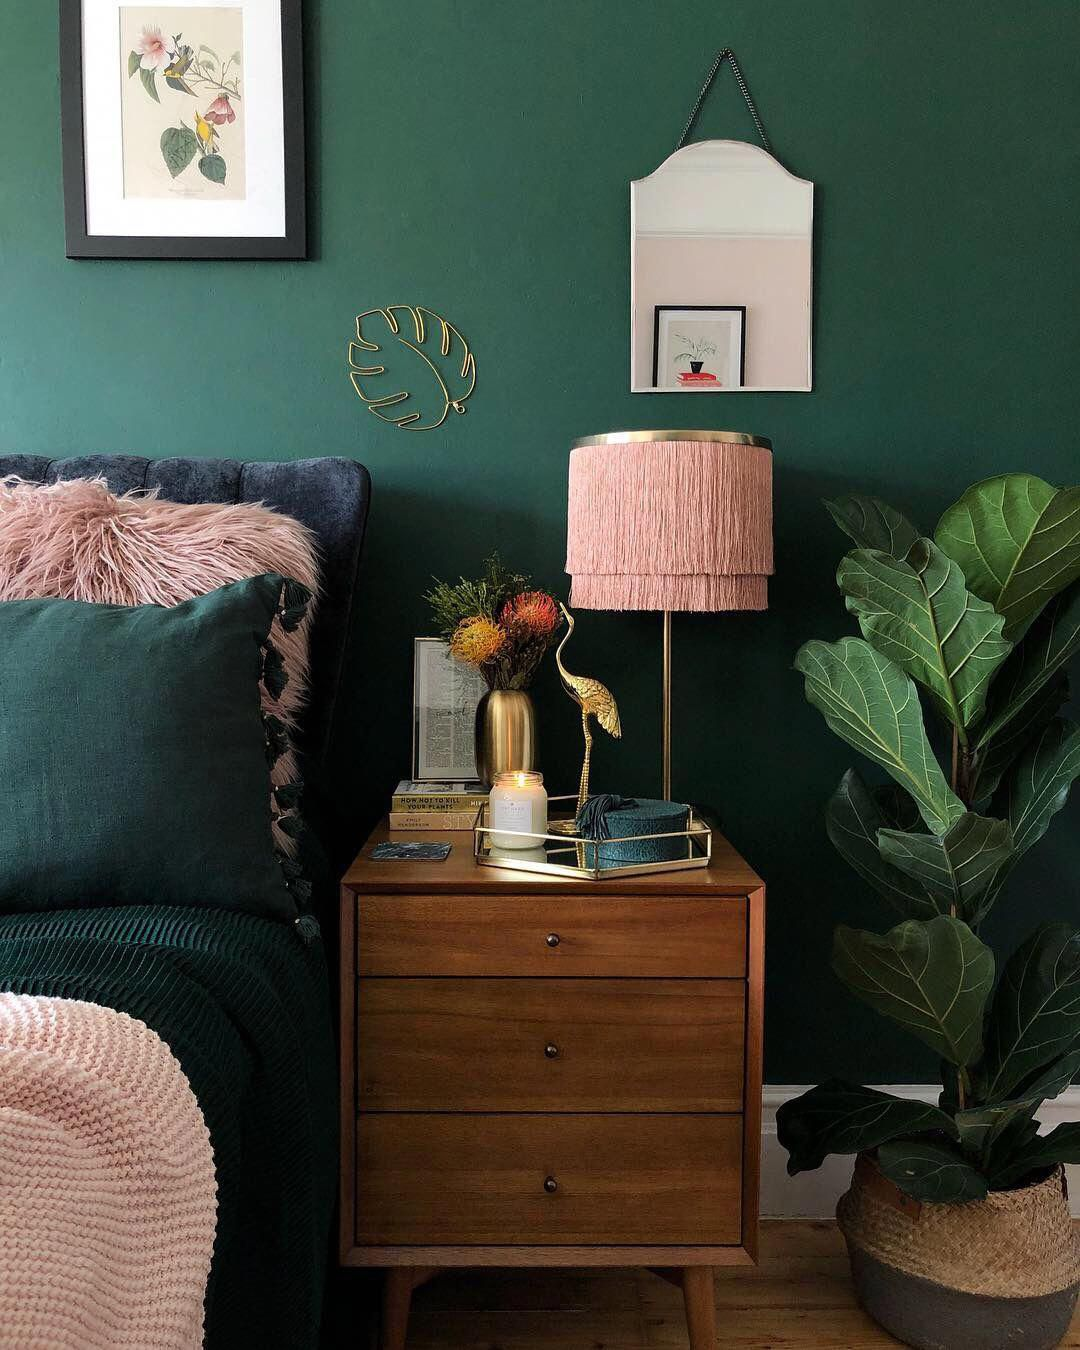 Pink and Green Bedroom Inspiration | 20 Photos That Will Prove Decorating with Pink and Green is the Next Big Thing